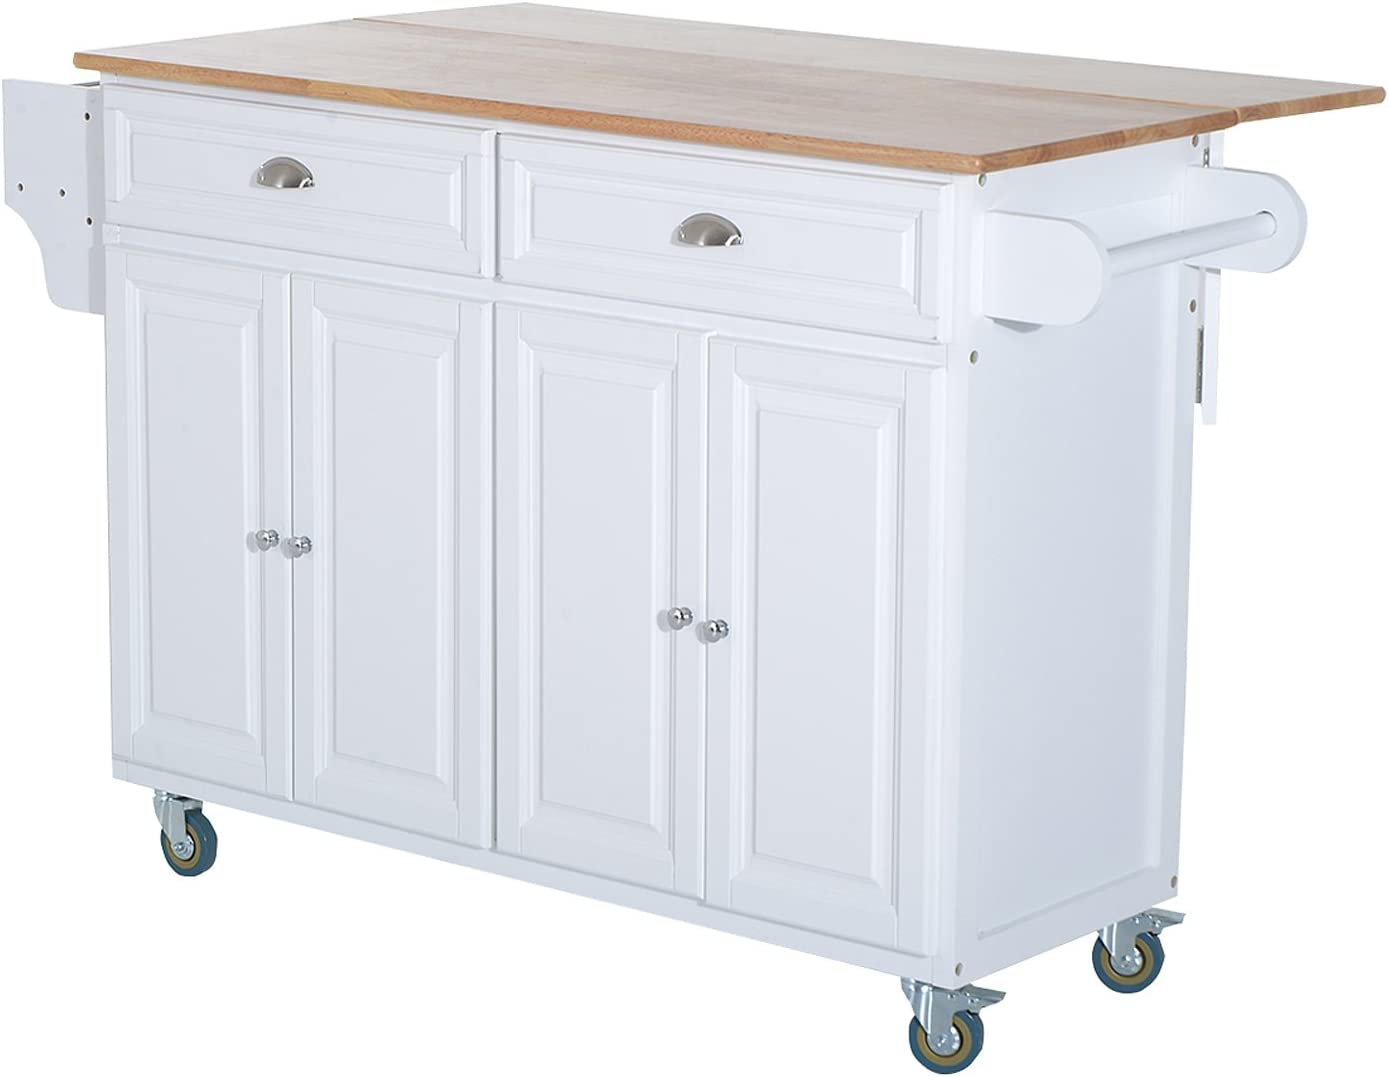 Homcom Rolling Kitchen Island On Wheels Ultility Cart With Drop Leaf And Rubber Wood Countertop Storage Drawer Door Cabinet White Kitchen Islands Carts